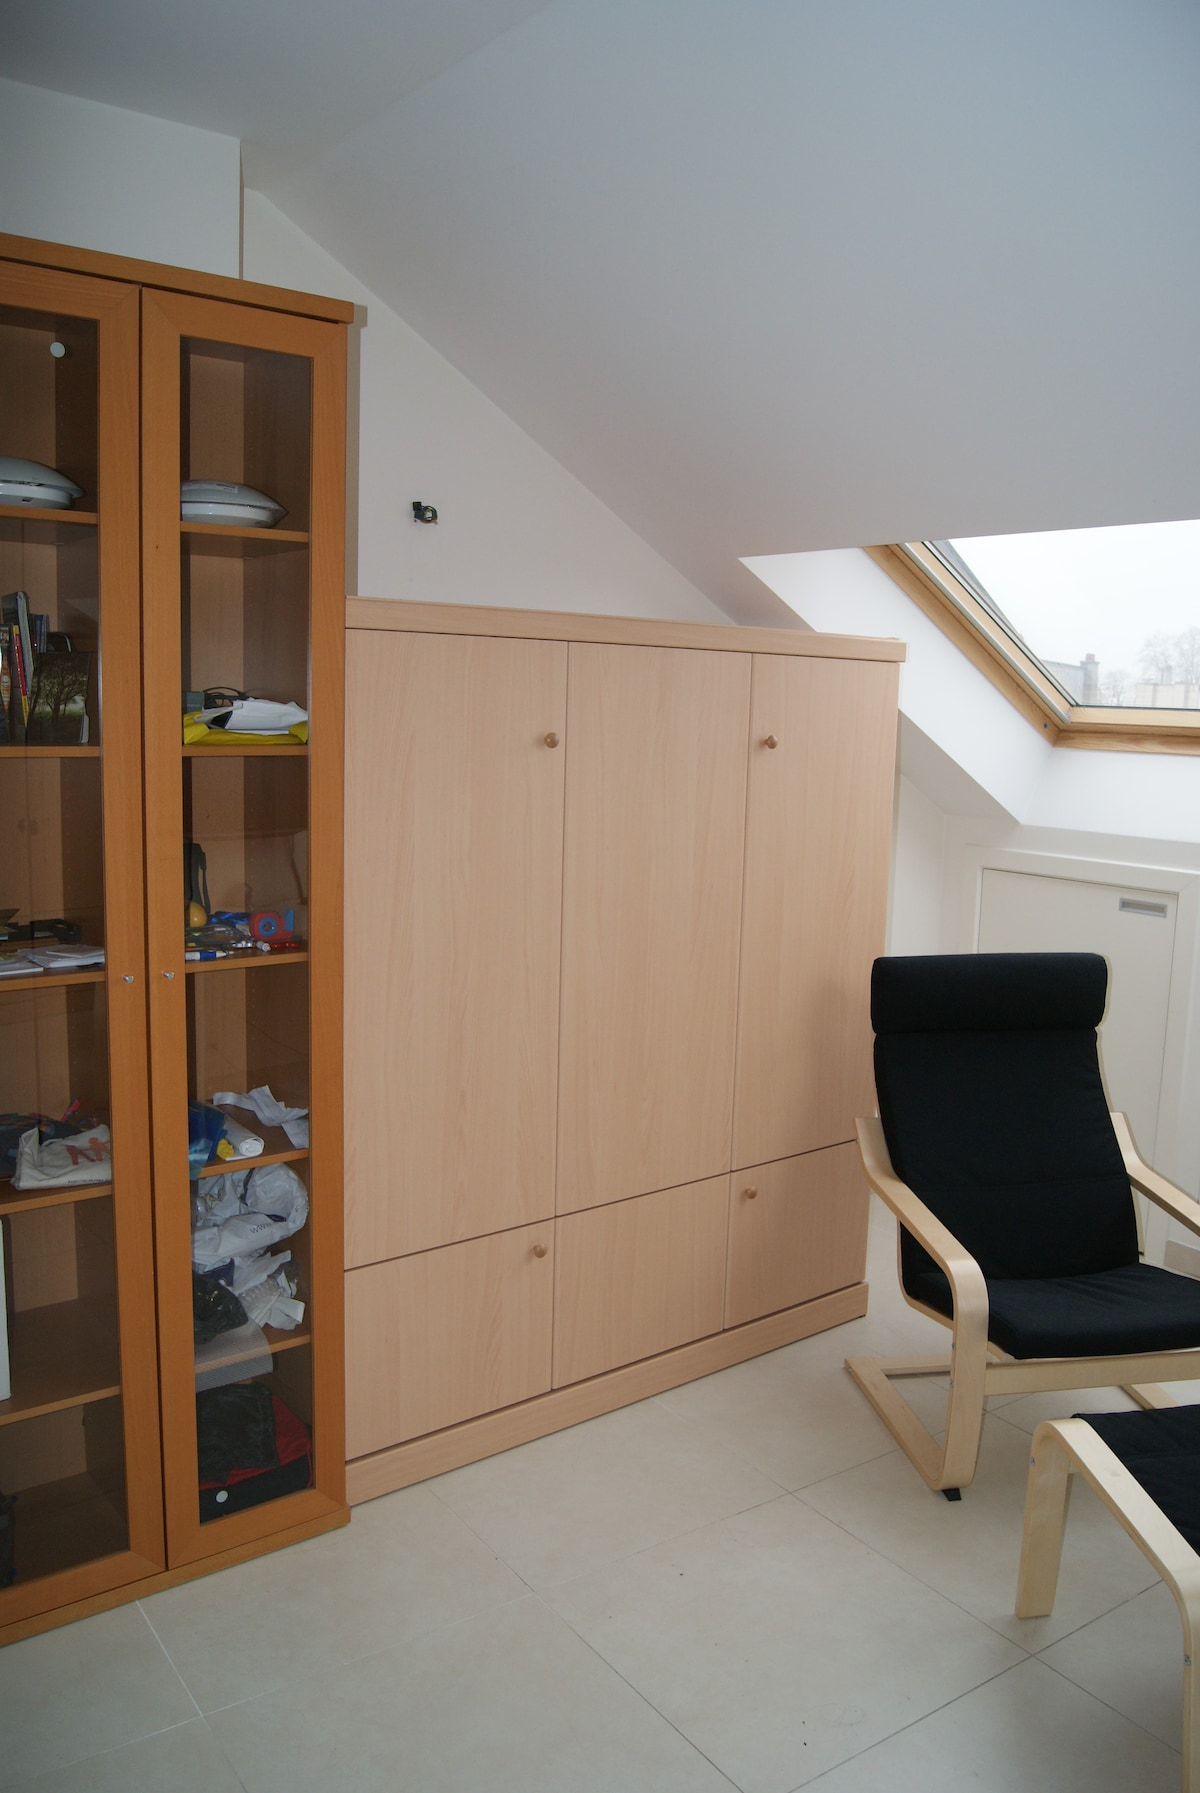 View with wardrobe bed folded away, allows space for armchair and footrest for reading or watching TV.